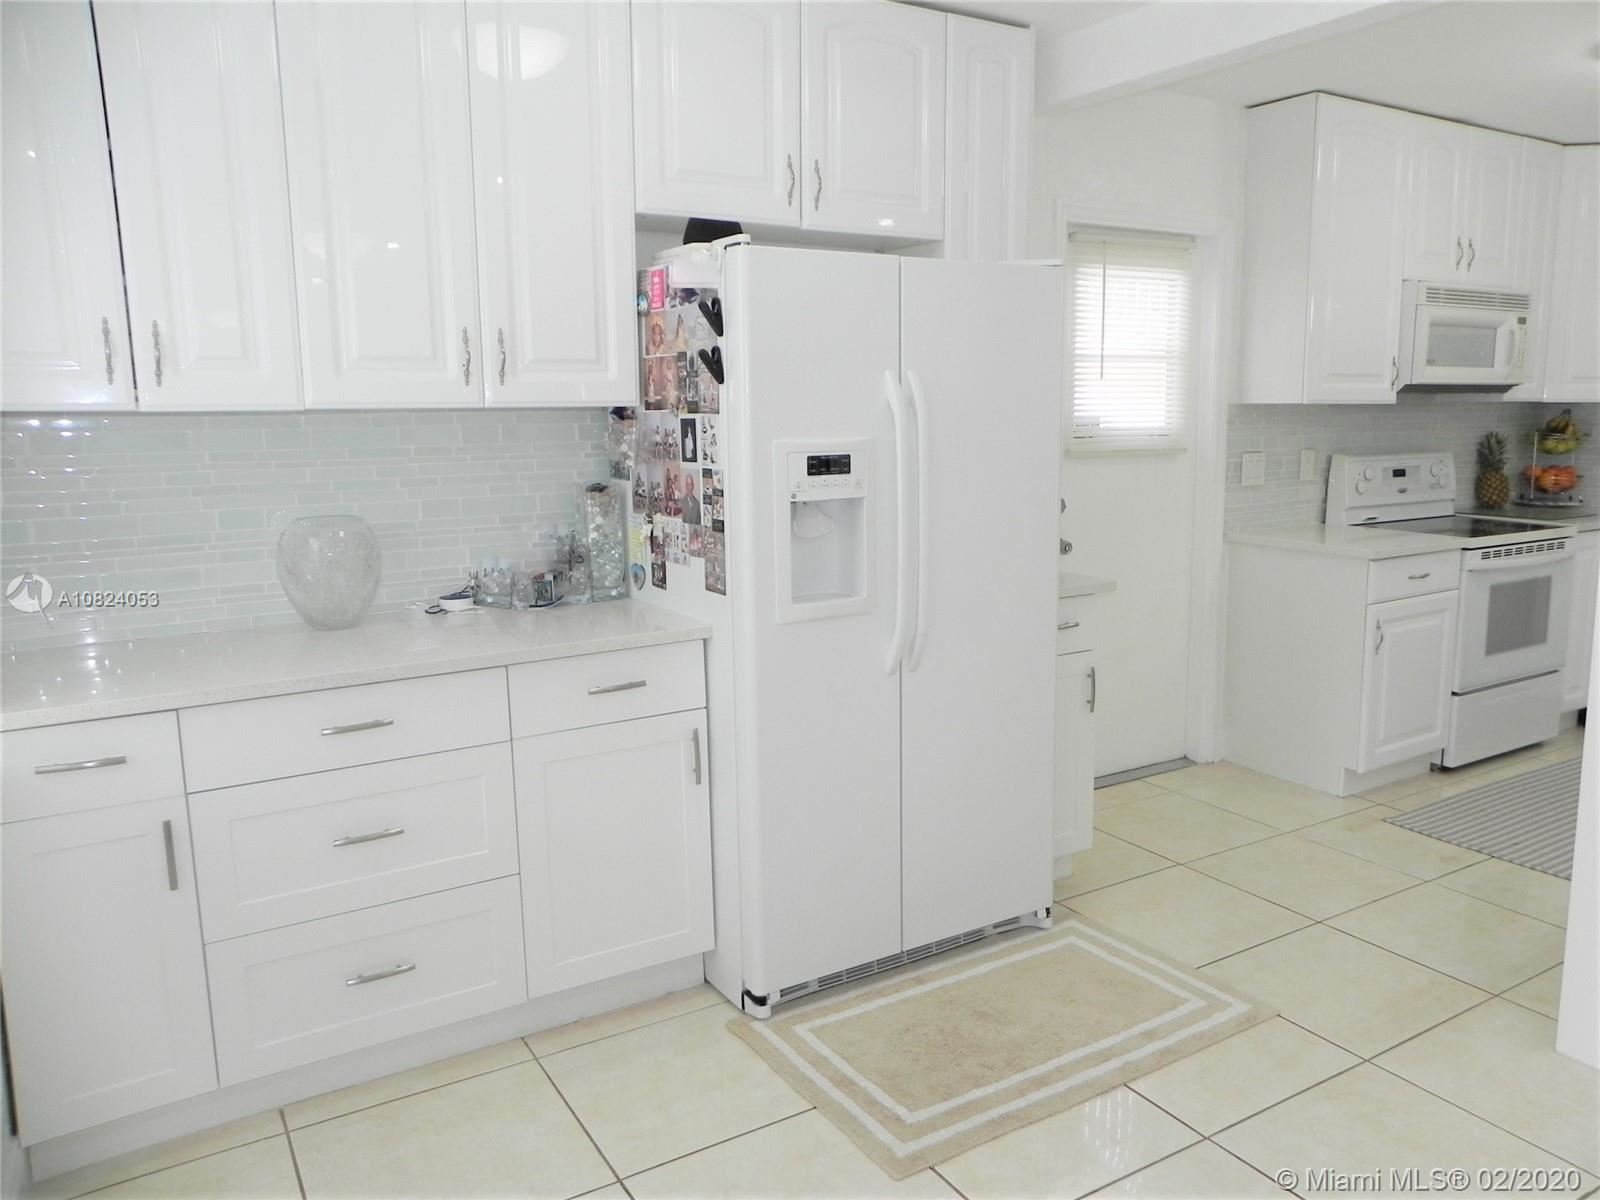 Photo 5 of Listing MLS a10824053 in 1531 Johnson St Hollywood FL 33020